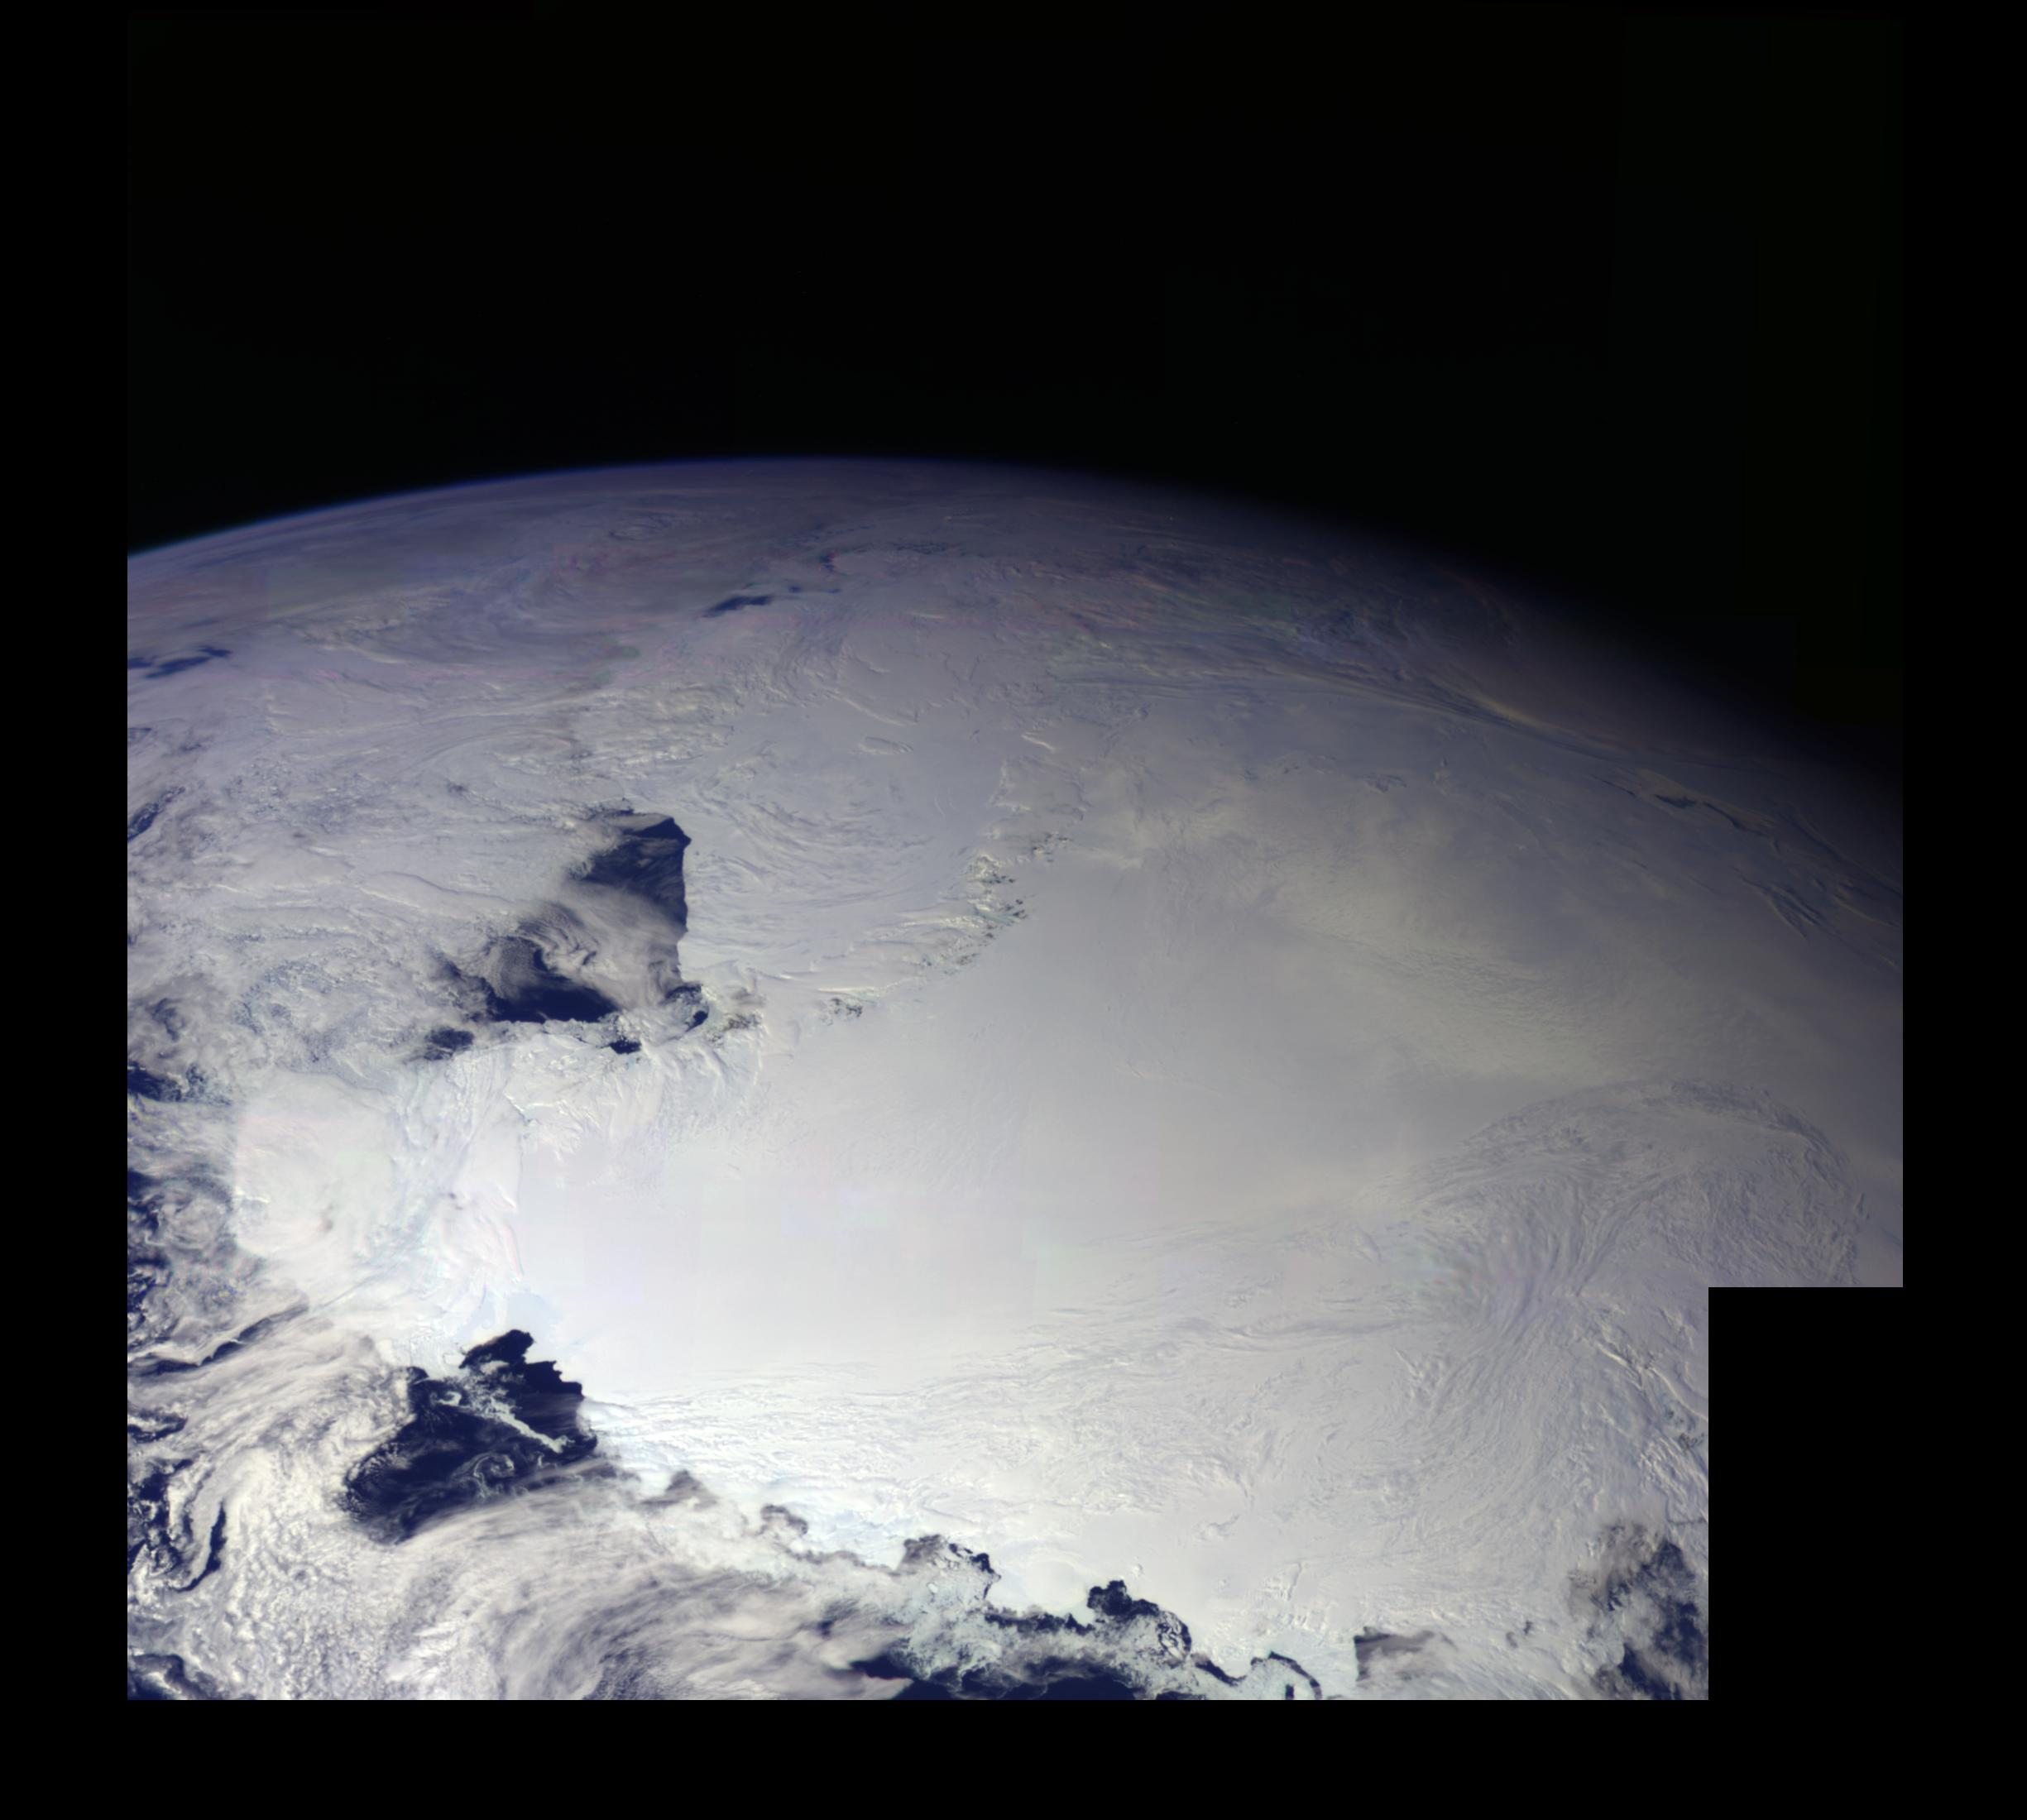 earth ross ice shelf antarctica nasa image and video library